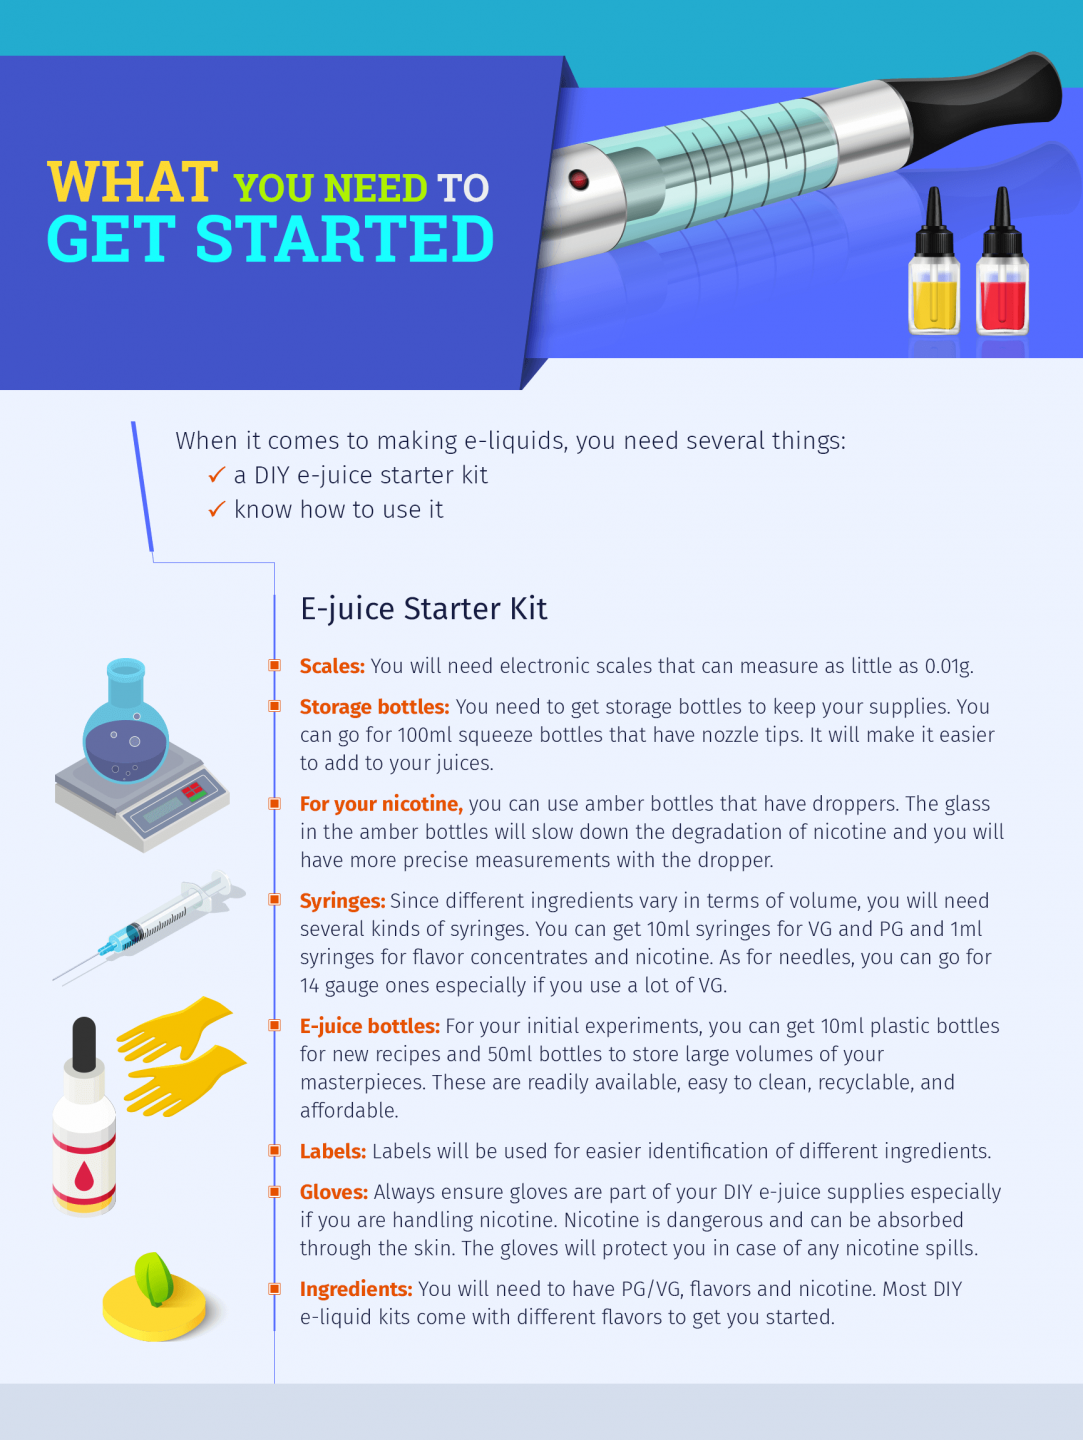 What you need to get started vape juices